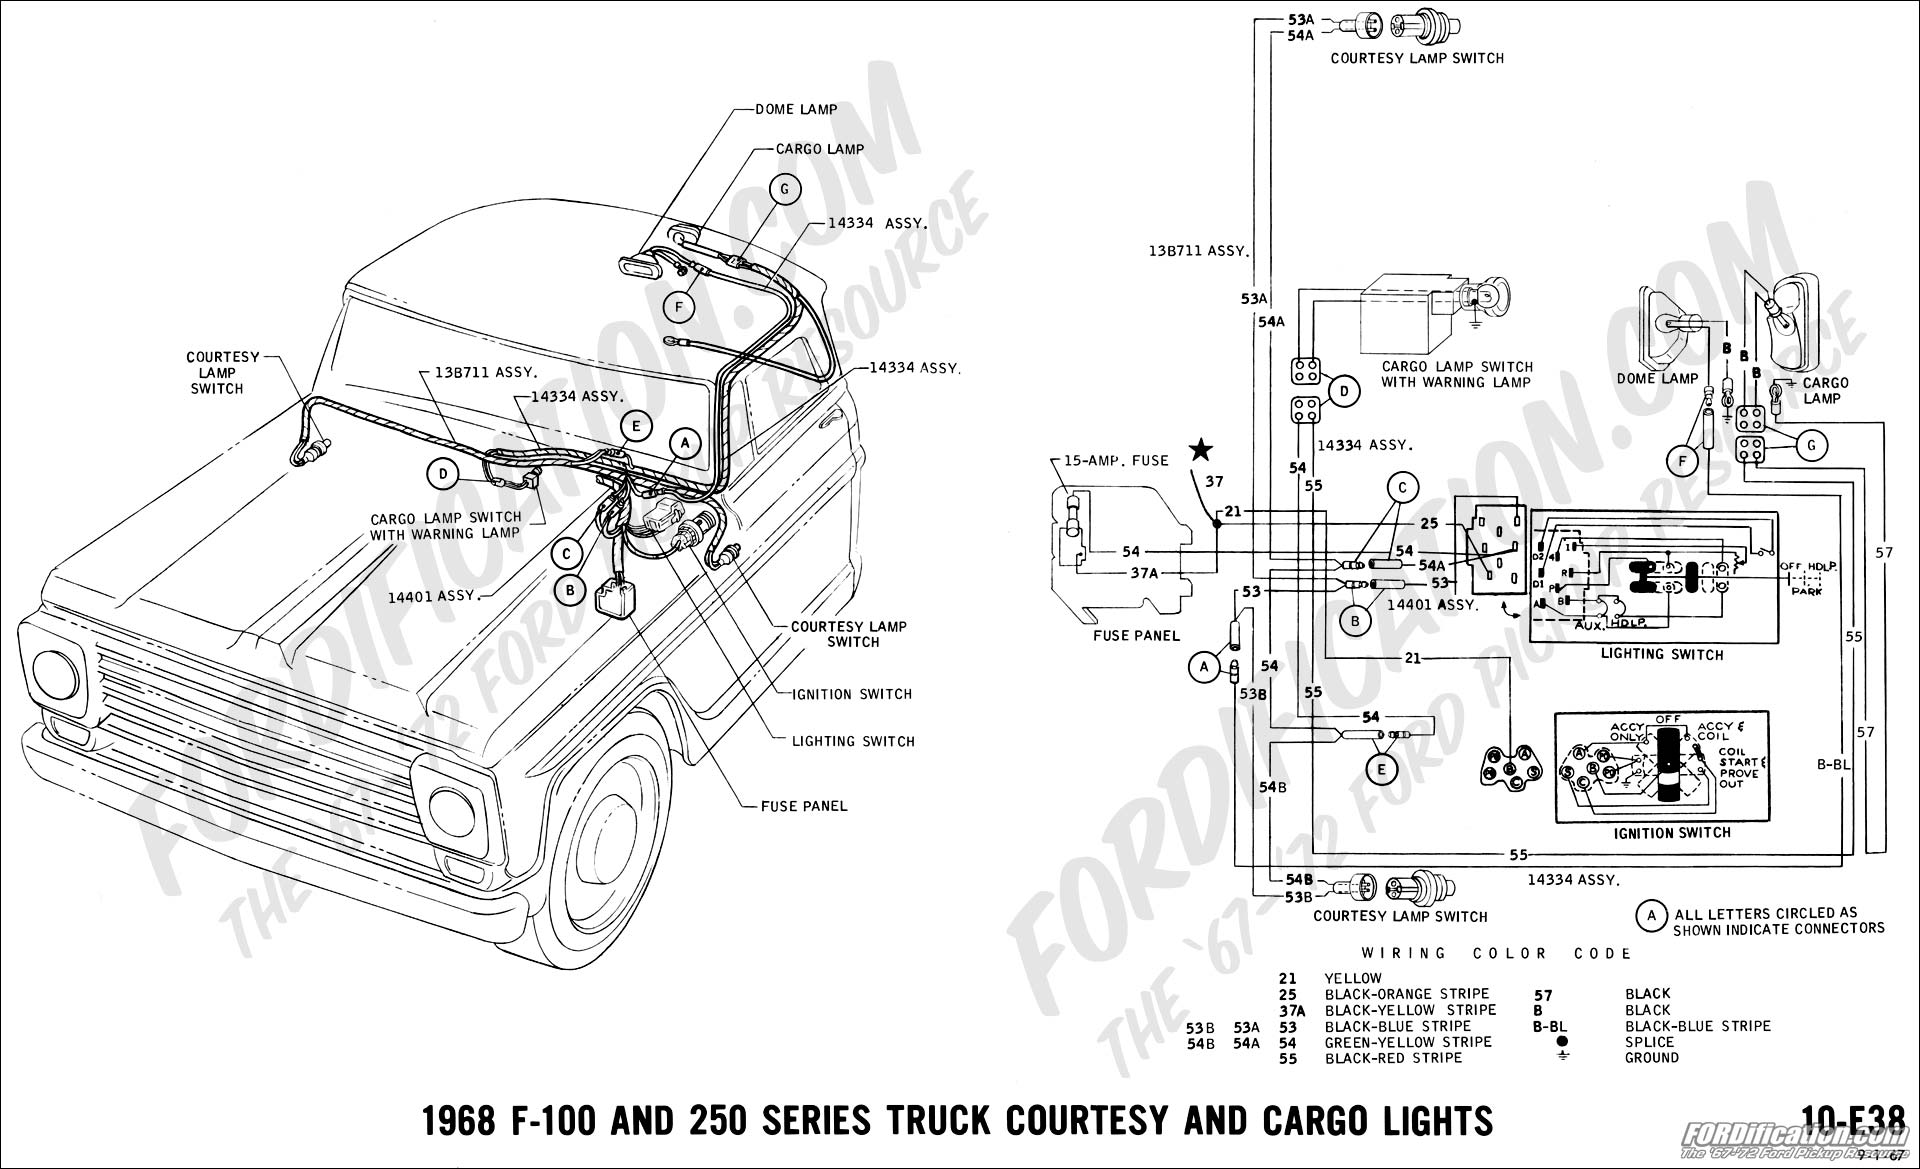 Ford Truck Technical Drawings And Schematics Section H Wiring 1977 Camaro Engine Diagram Rear Body Taillight 1968 F 100 250 Courtesy Cargo Lights